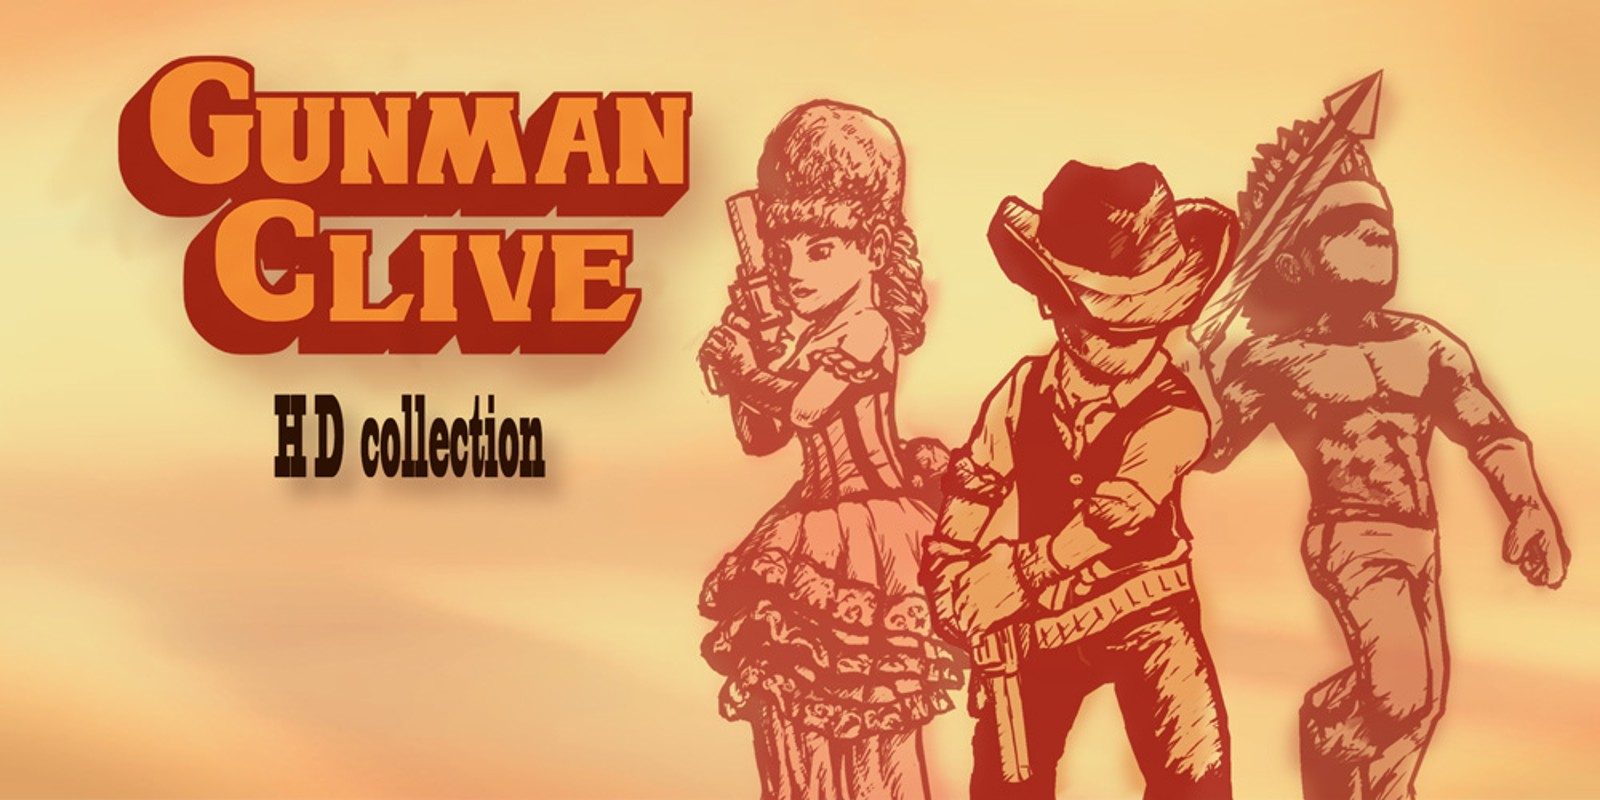 Gunman Clive HD Collection confirmed for Switch